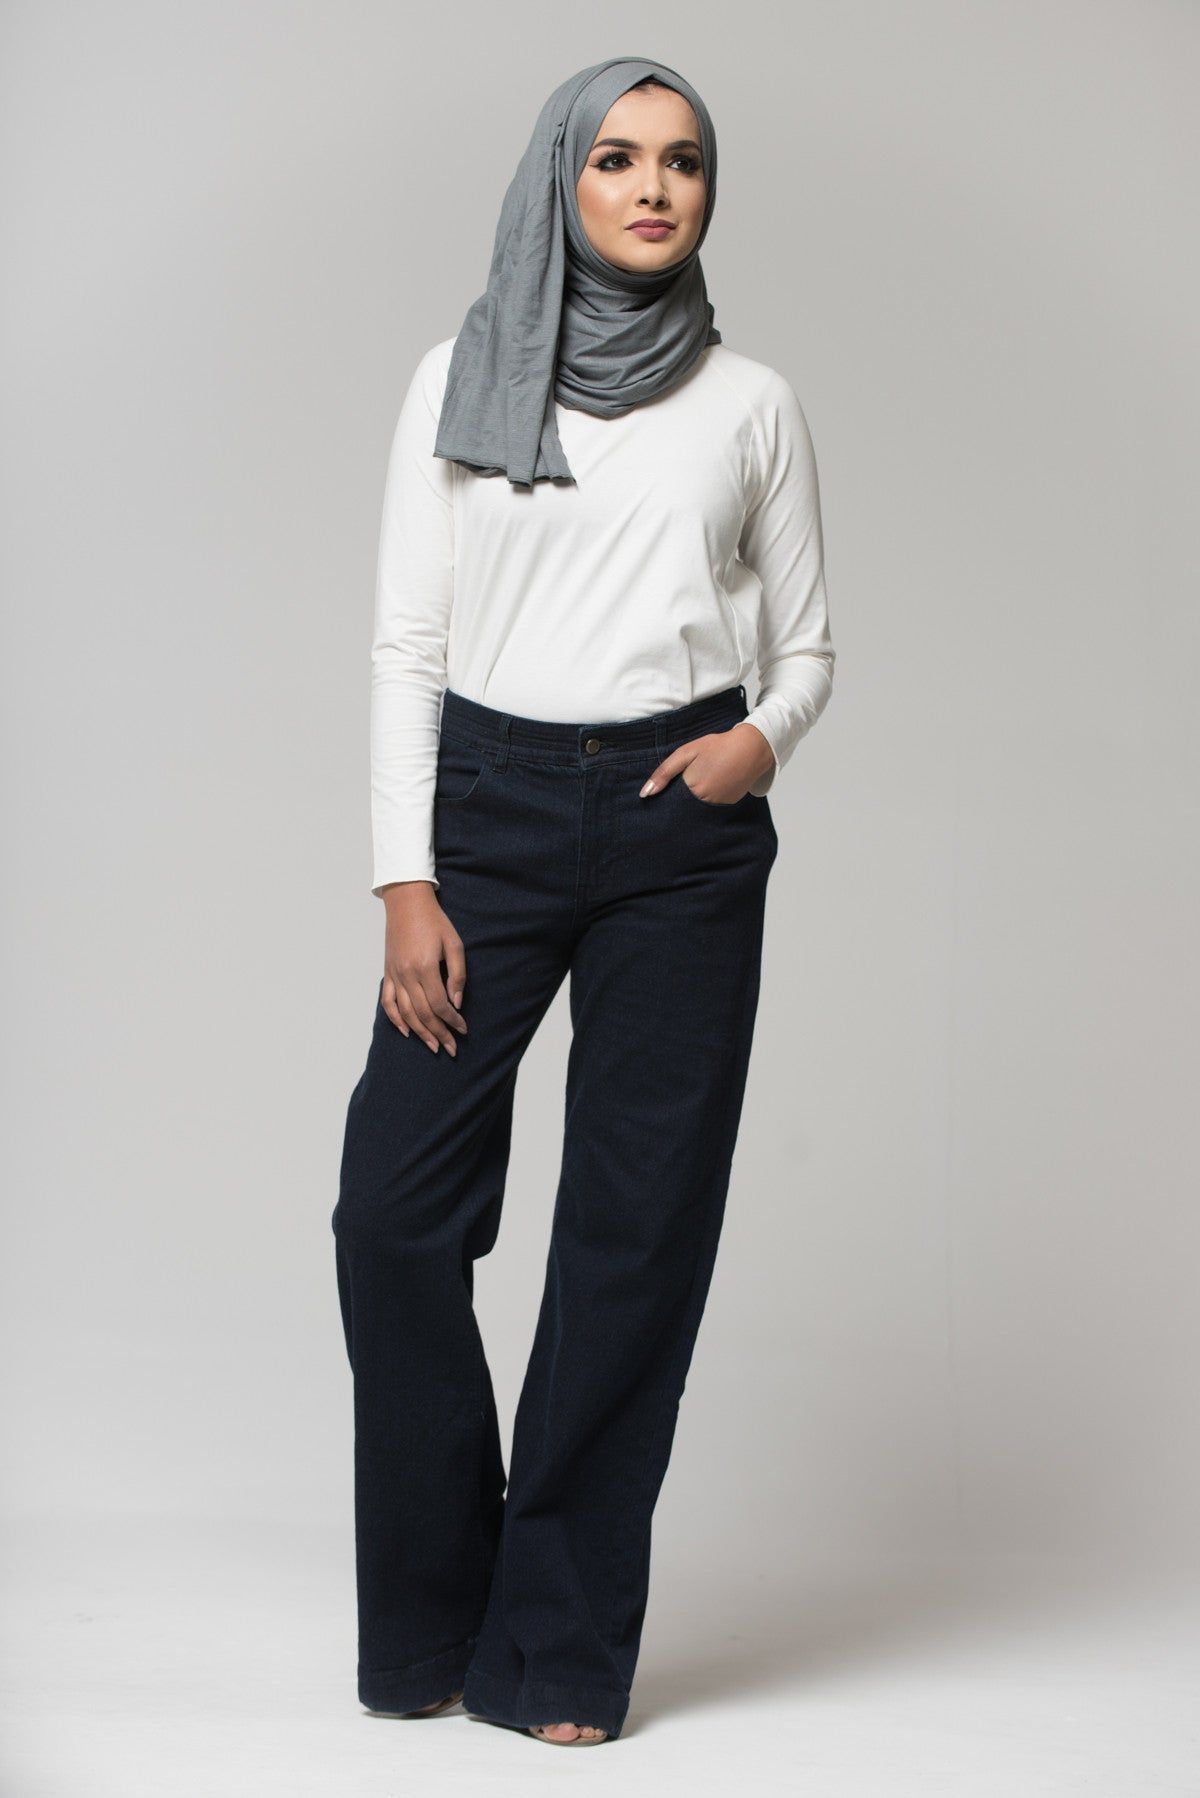 NORA Modest Jeans